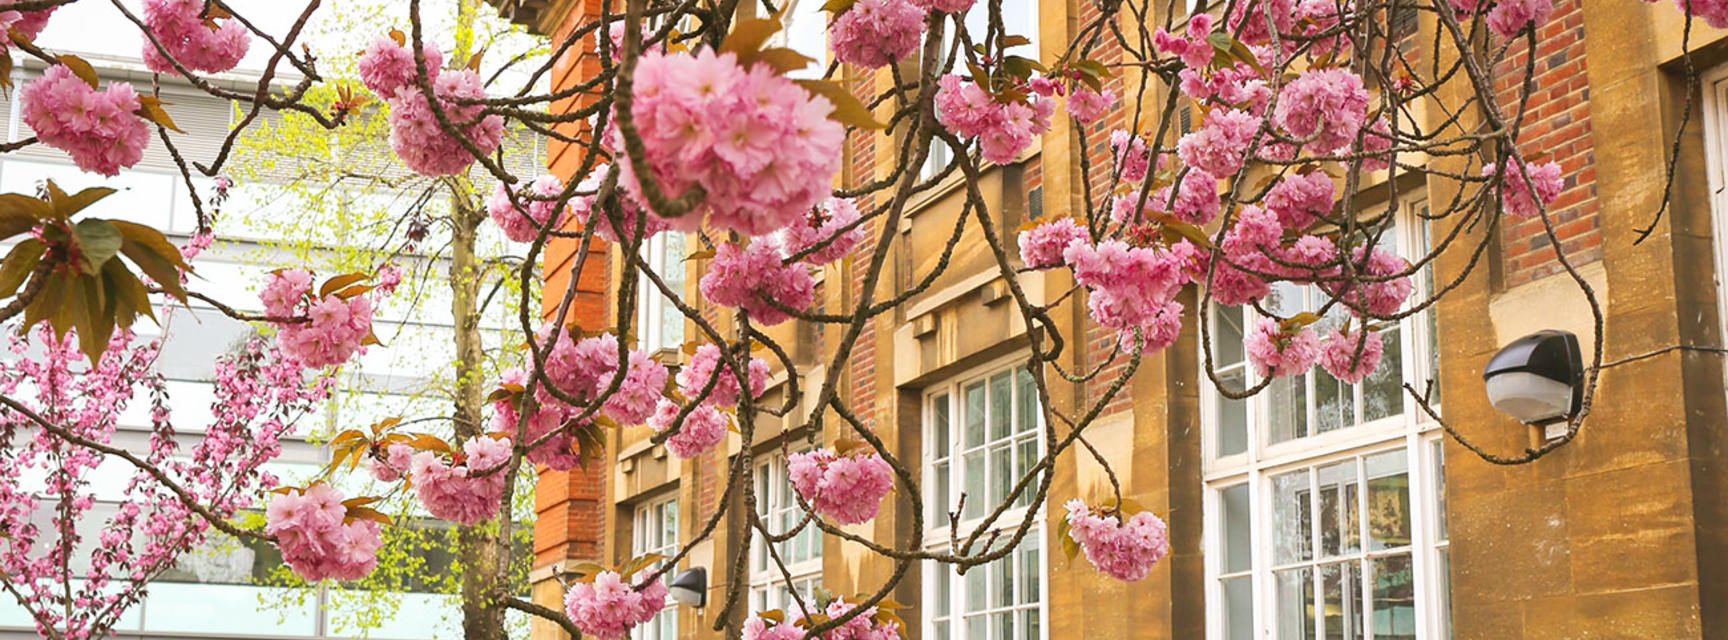 Photo of may blossom outside the Dyson Perrins Building